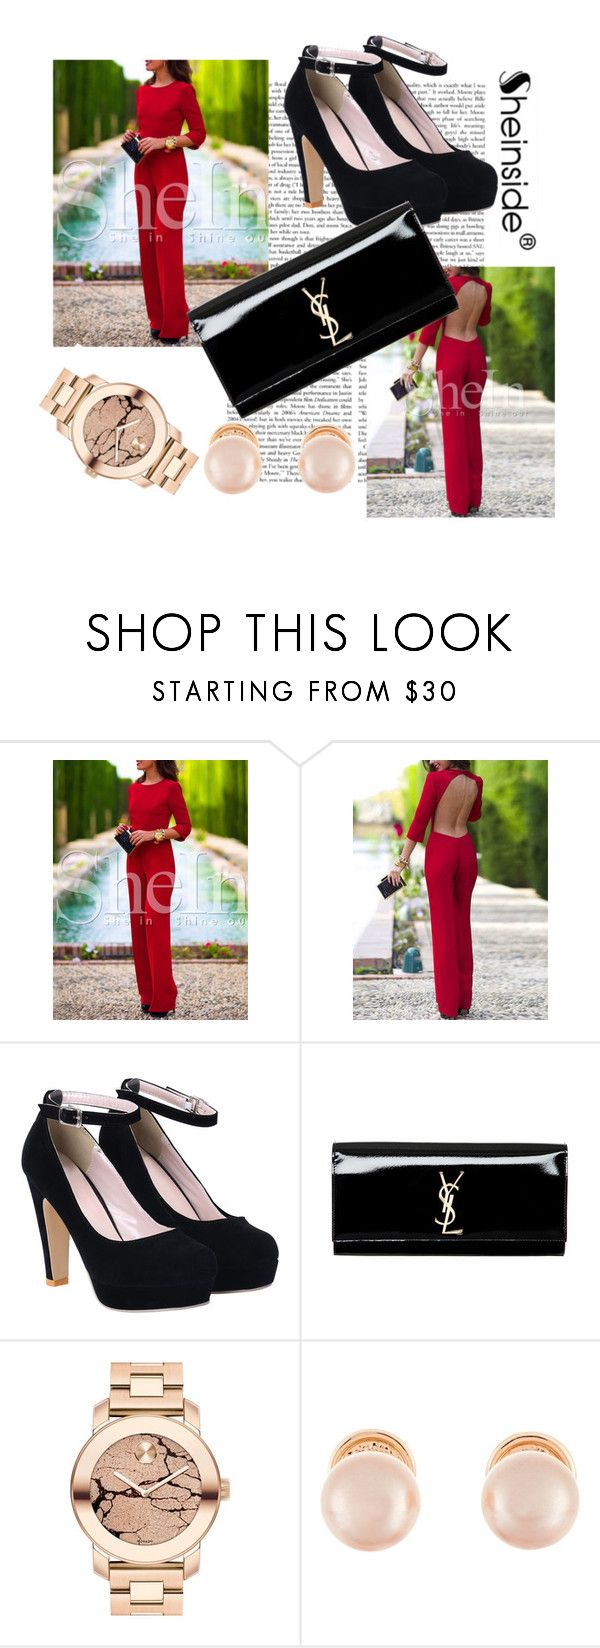 """Sheinside 9/I"" by aneela-57 ❤ liked on Polyvore featuring Yves Saint Laurent, Movado and Kenneth Jay Lane"